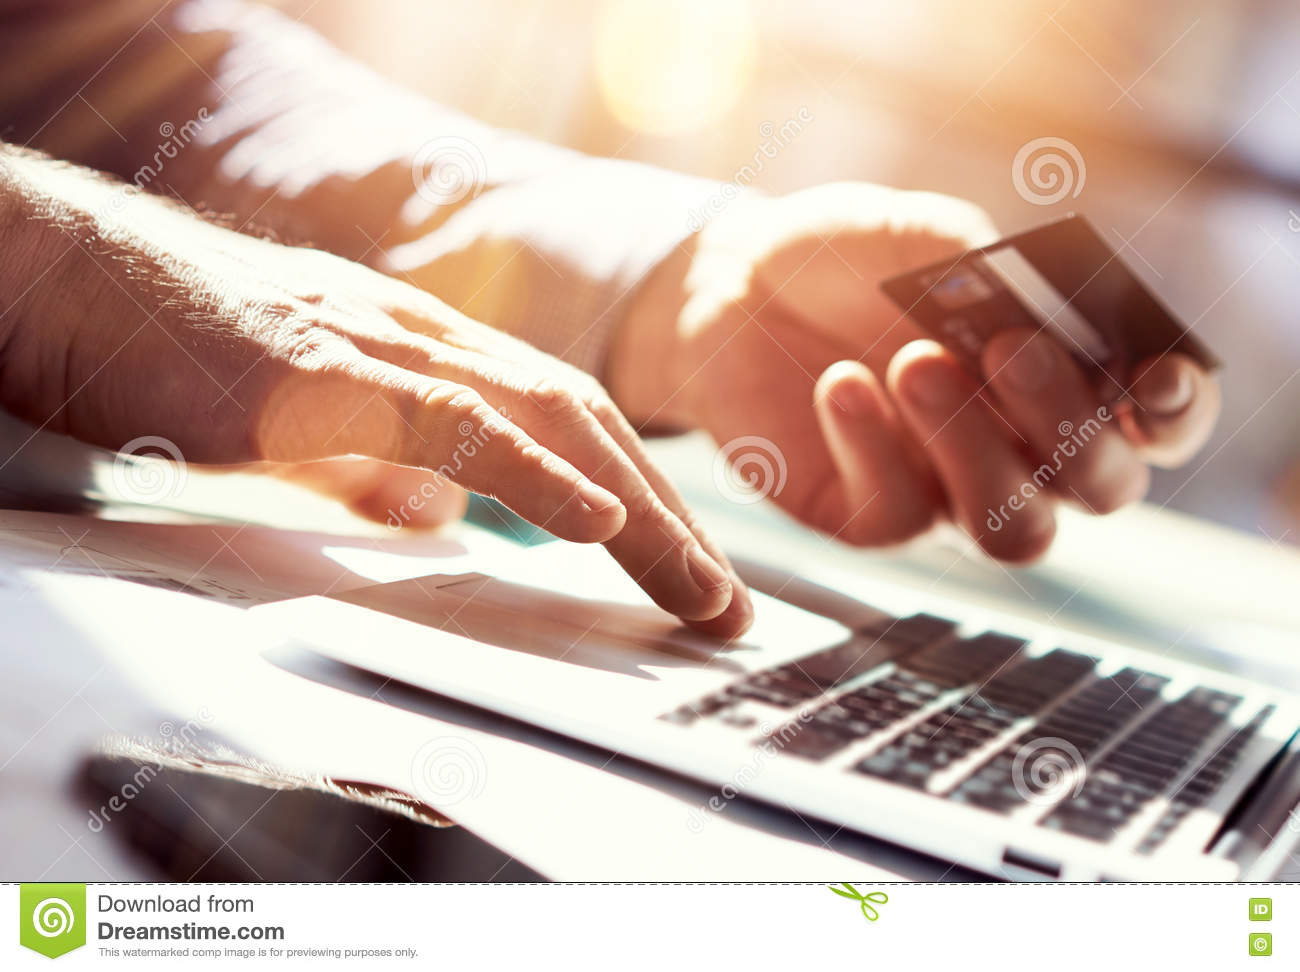 closeup-man-holding-hand-credit-card-businessman-use-laptop-online-payments-shopping-guy-typing-keyboard-notebook-name-numbers-76810601.jpg